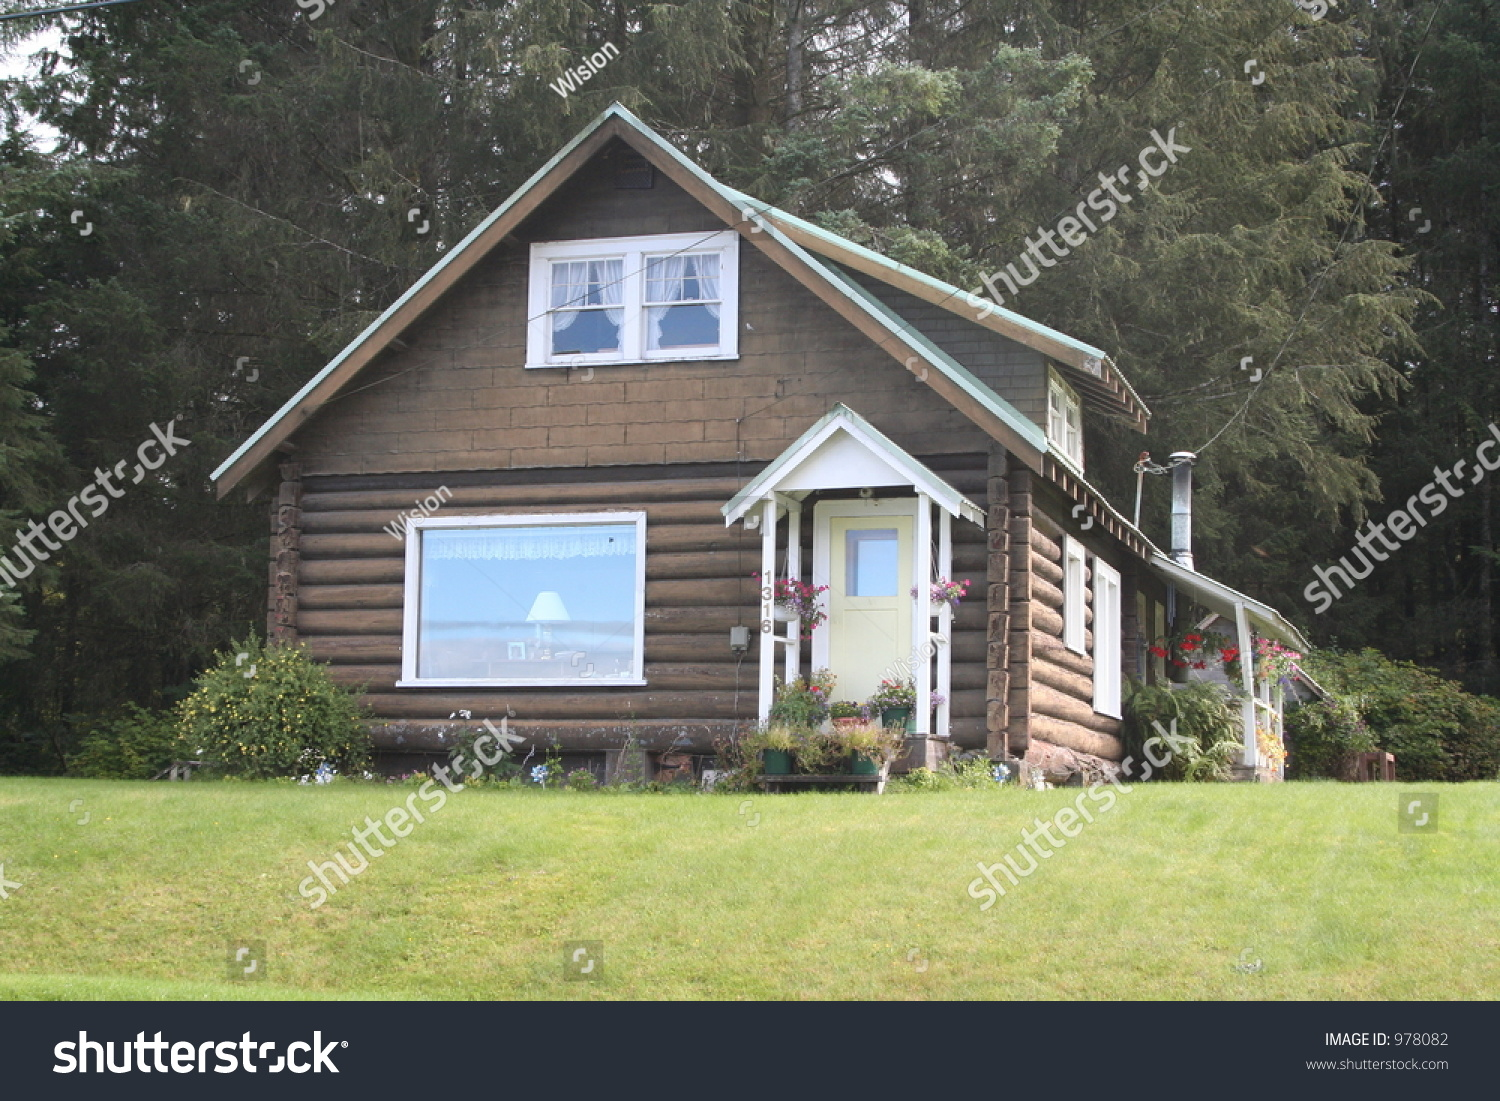 Small Family House Stock Photo 978082 Shutterstock